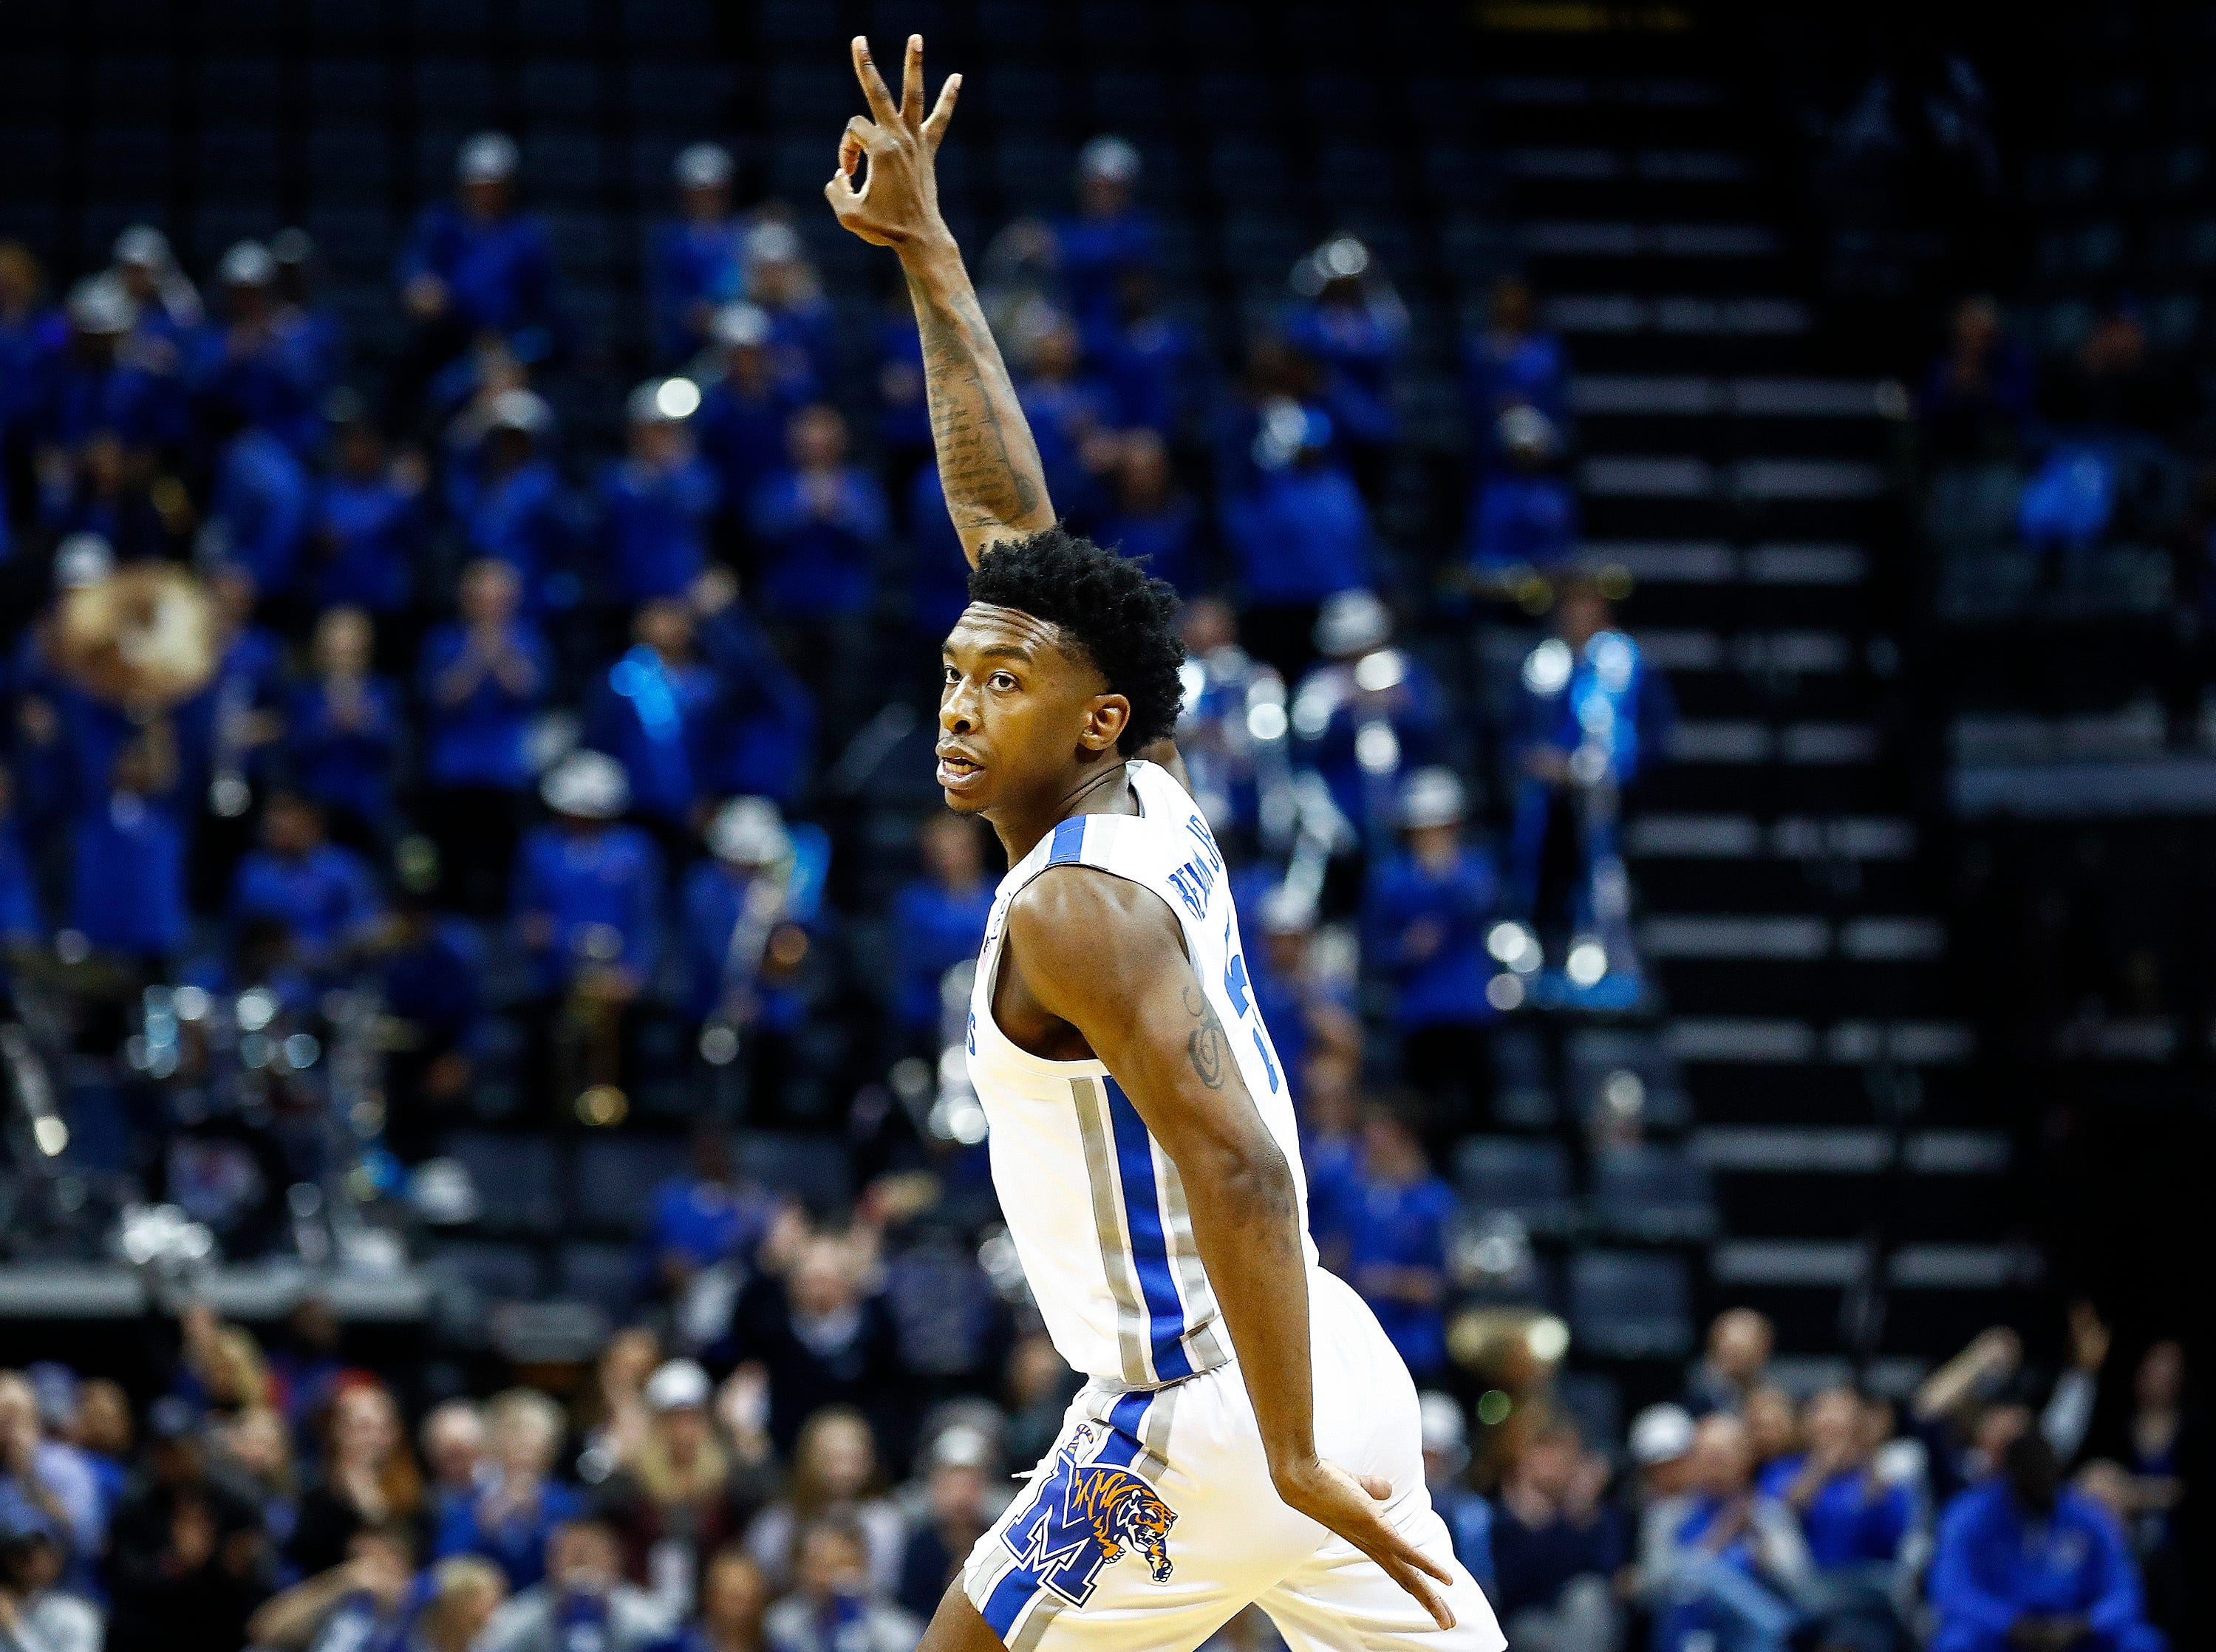 Memphis guard Kareem Brewton Jr. celebrates a made 3-pointer against South Dakota State during action at the FedExFourm., Tuesday, December 4, 2018.